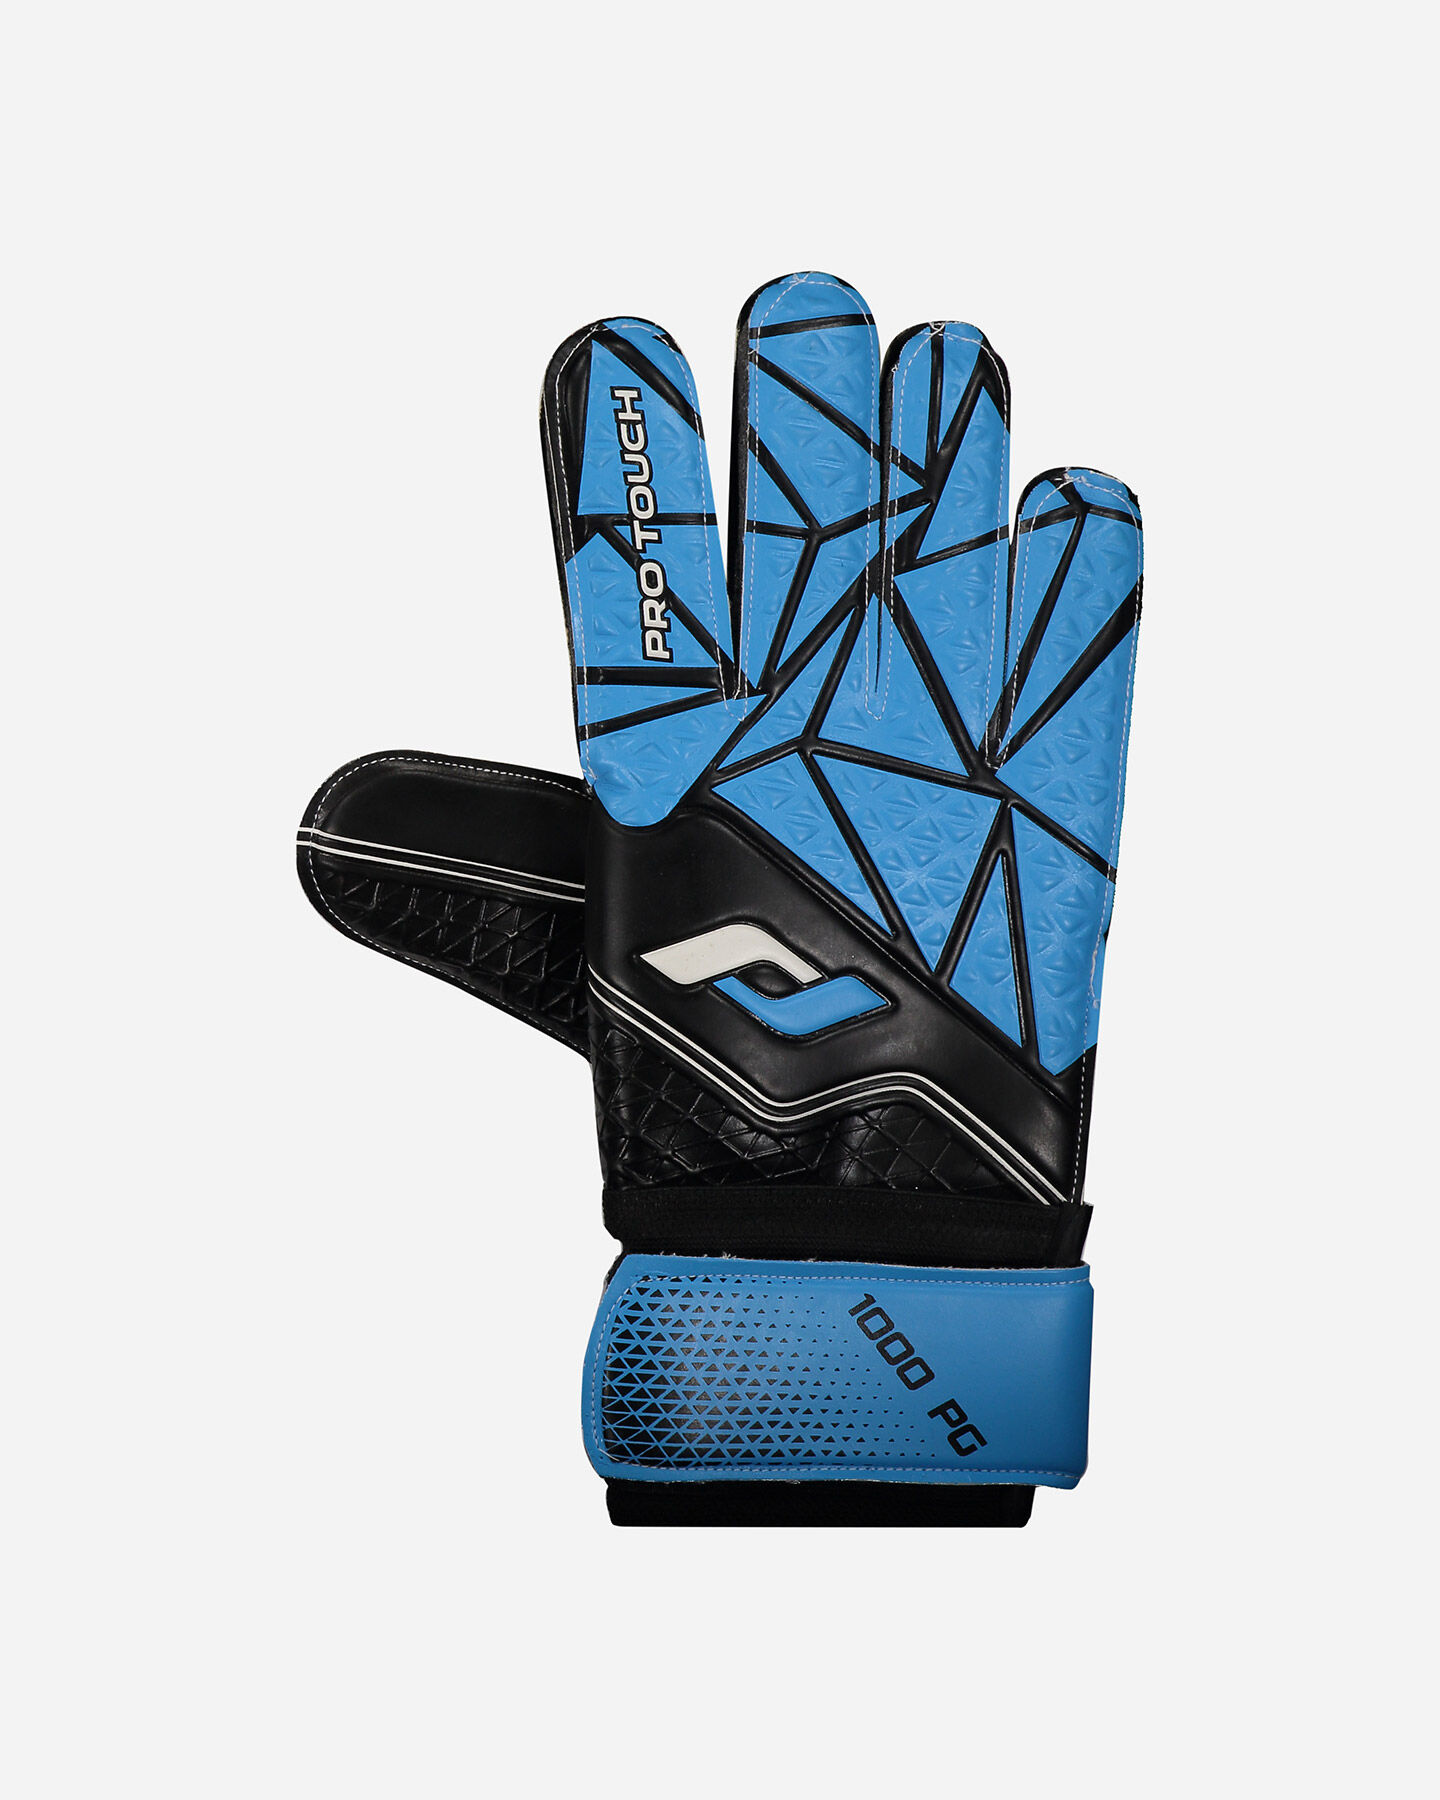 Guanti portiere PRO TOUCH FORCE 1000 PG TR 1 M S1177818 scatto 1